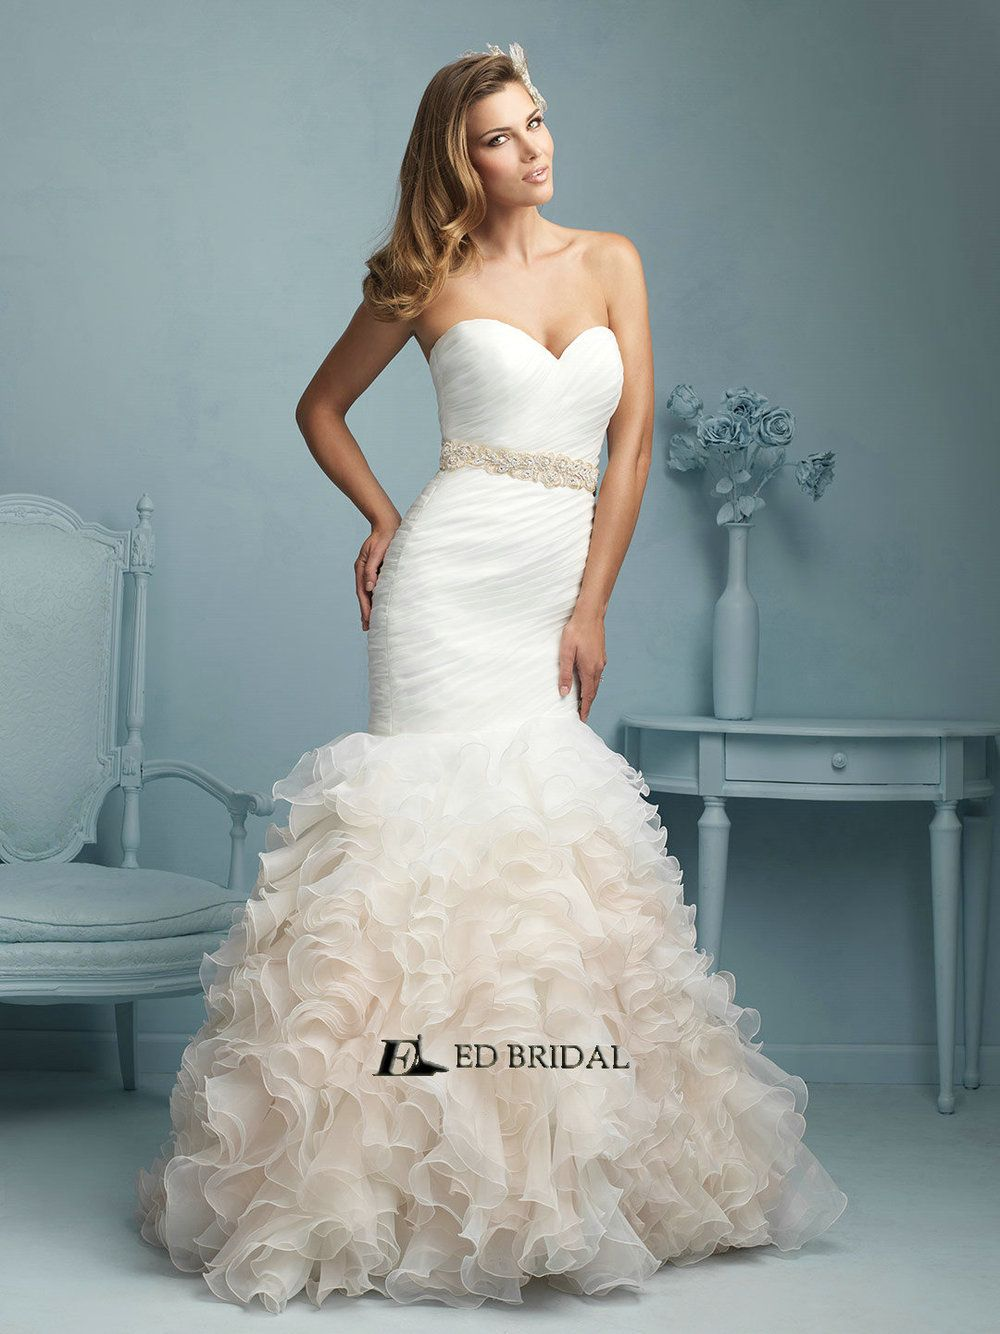 Mermaid ruffle wedding dress  EDYH Vestidos de Novias Ruffled Pleated Mermaid Ivory Wedding